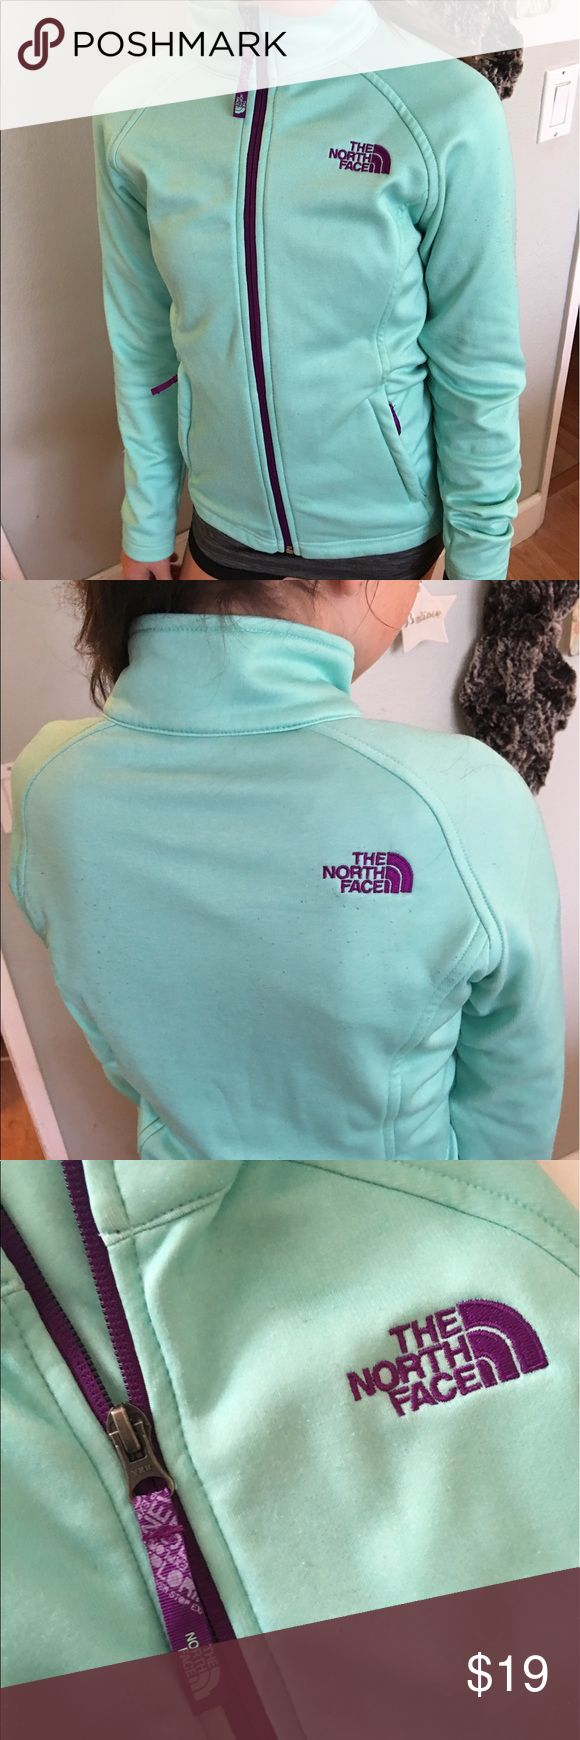 Girls North Face jacket Super cute used jacket in good condition. My granddaughter just grew out of it. Aqua with purple zippers. North Face Jackets & Coats